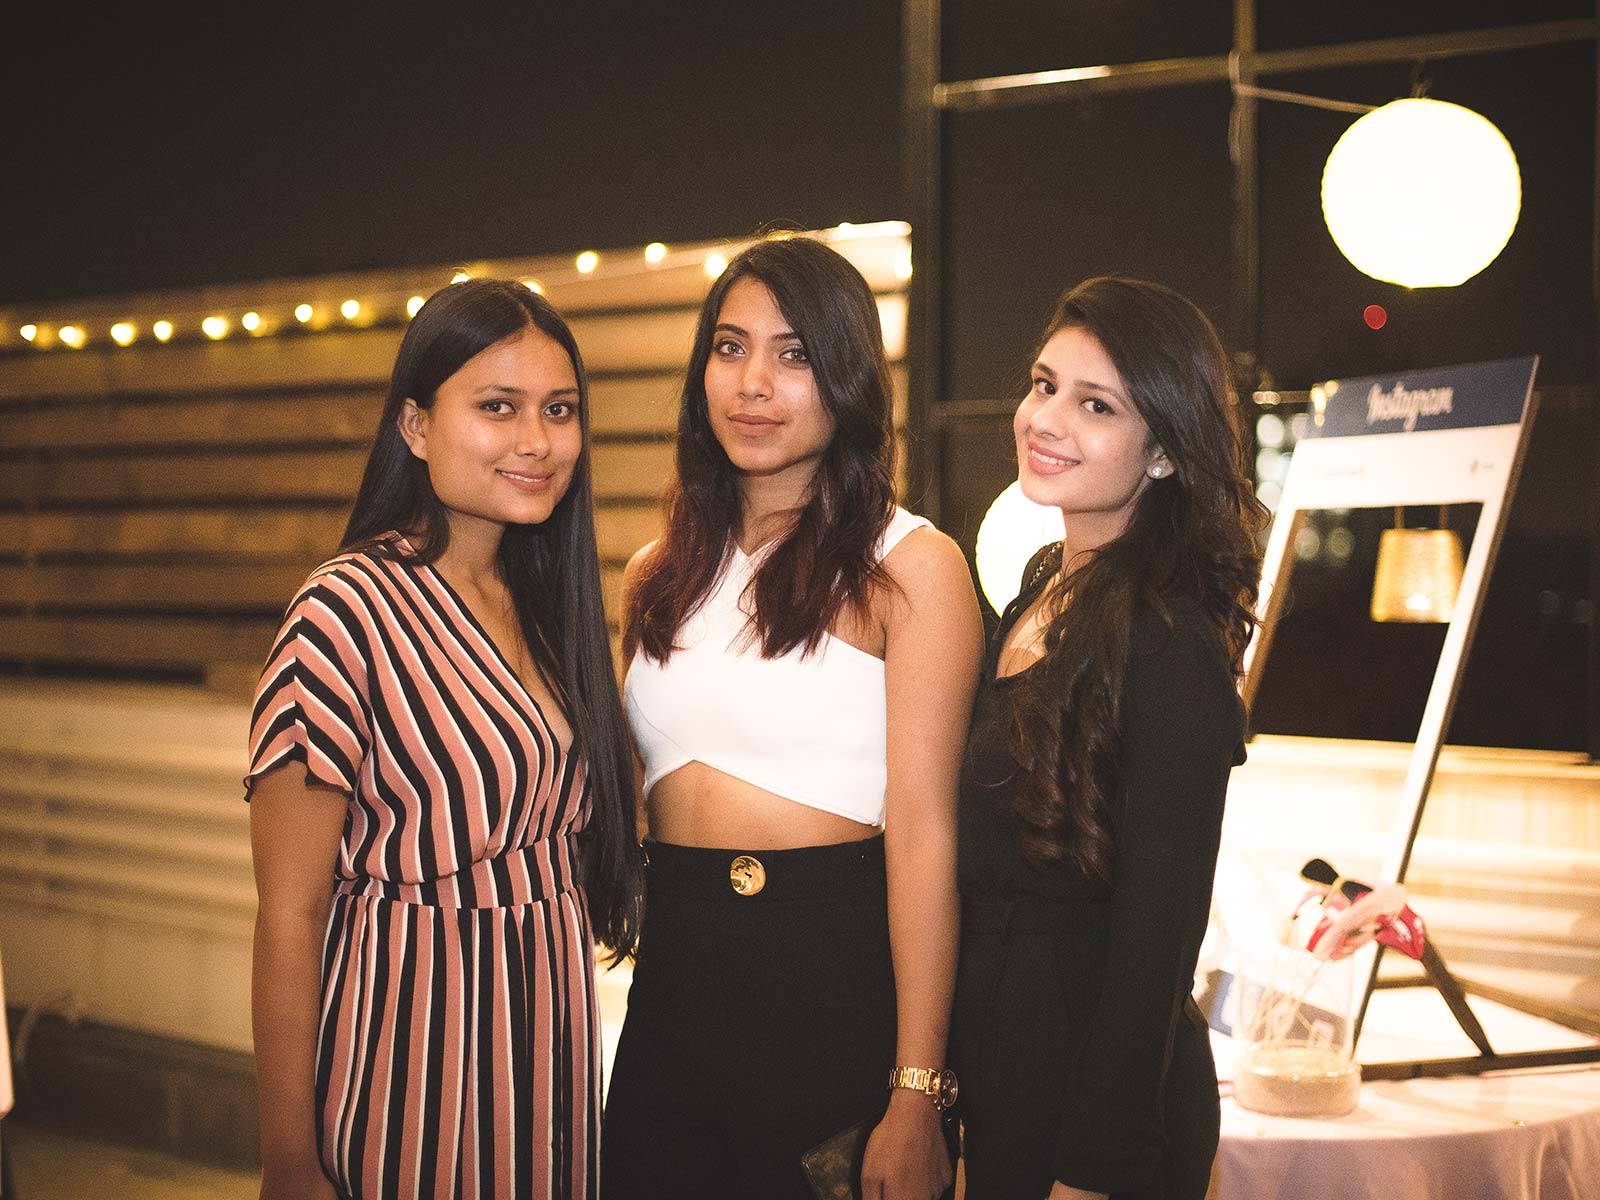 Abhilasha Rauthan and Aarushie Aks Bali at the #POPxoTurns3 party